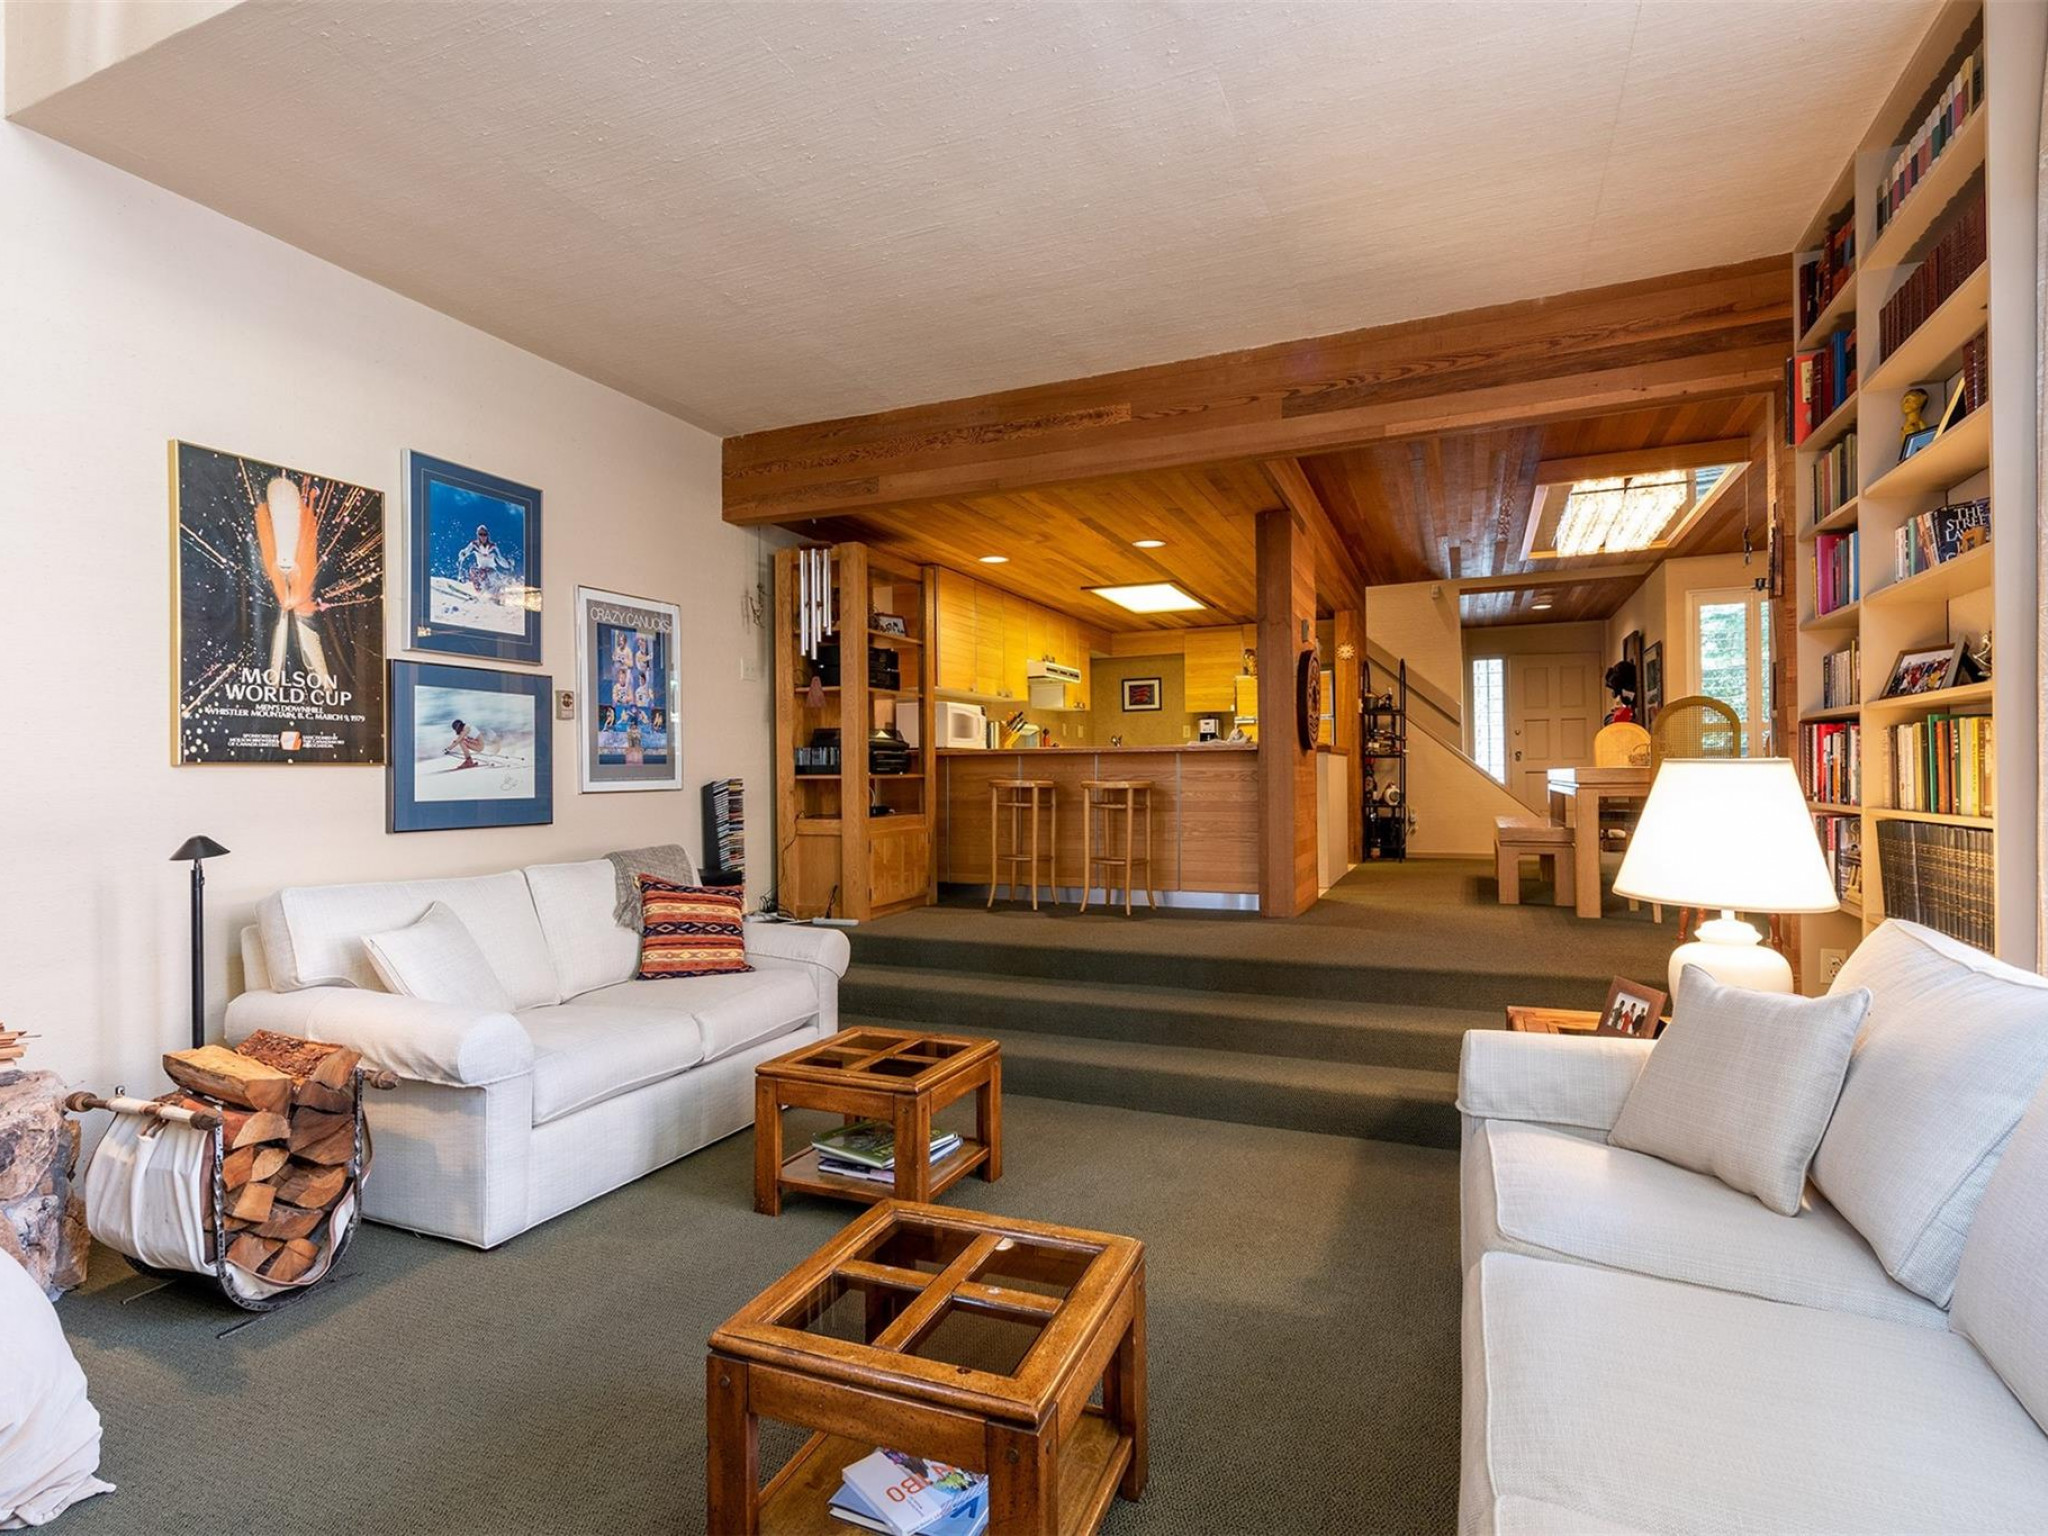 2018 Squaw Valley Crescent image 2